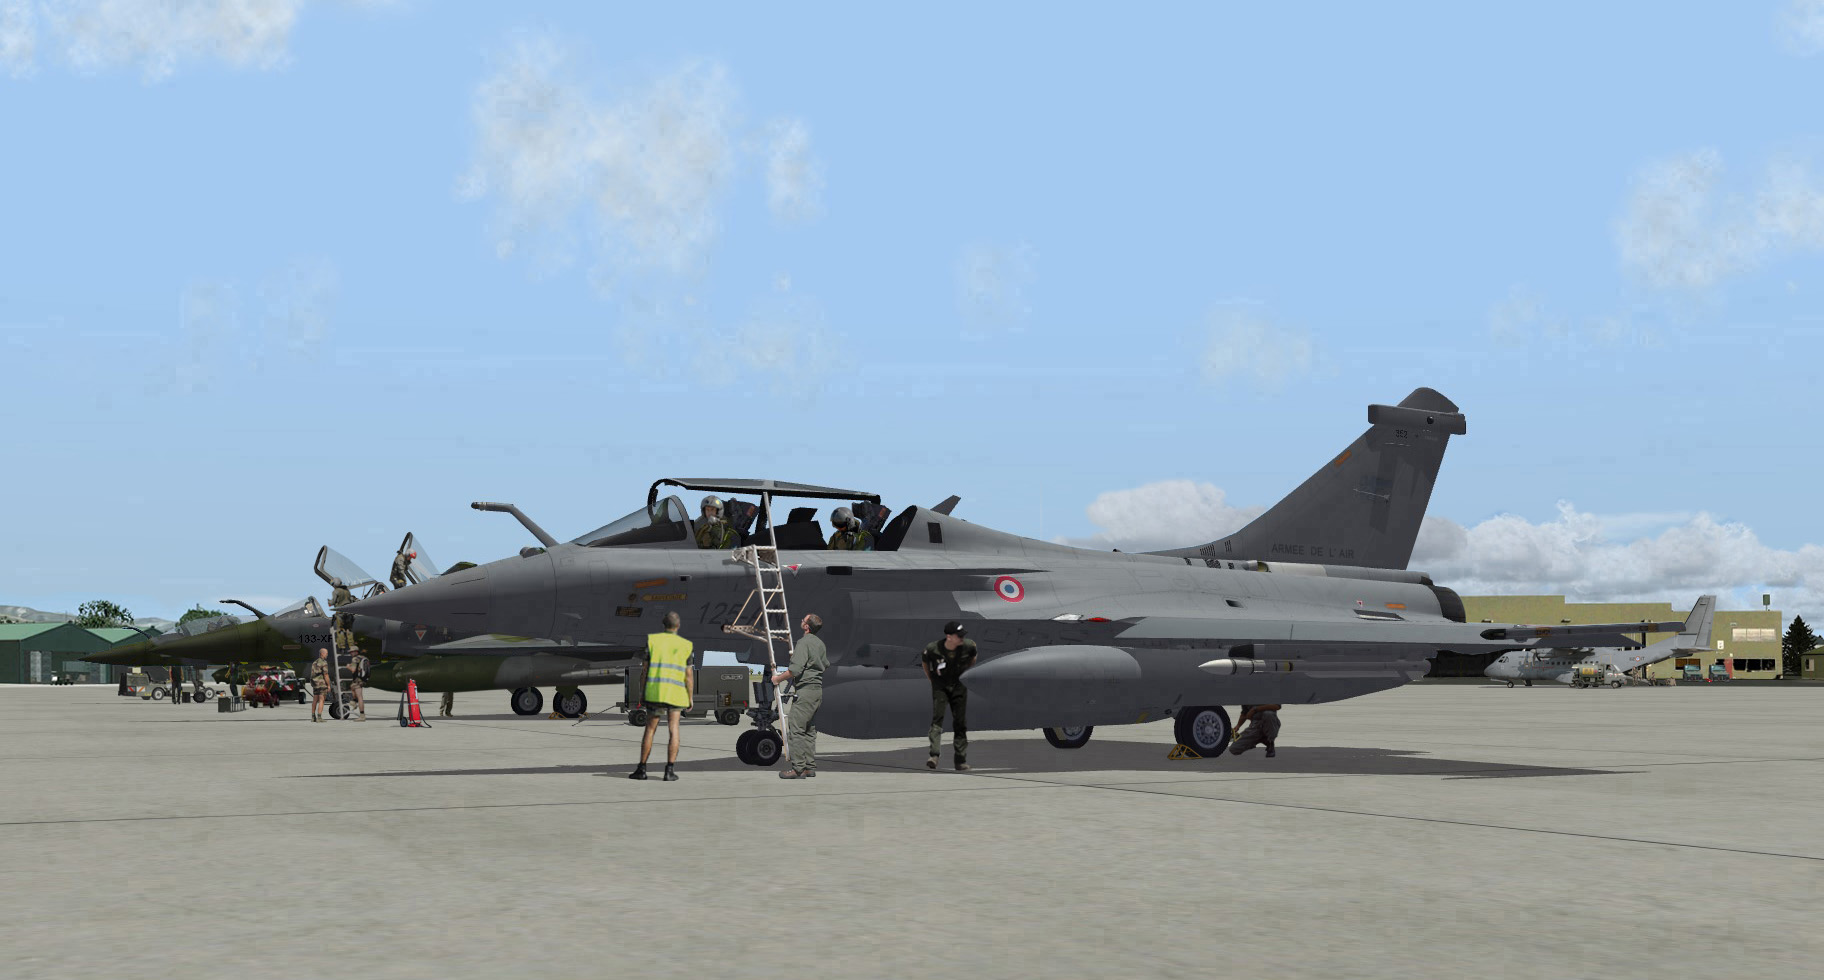 2011 Rafale B after landing, alongside Mirages 2000D being prepared for a mission.